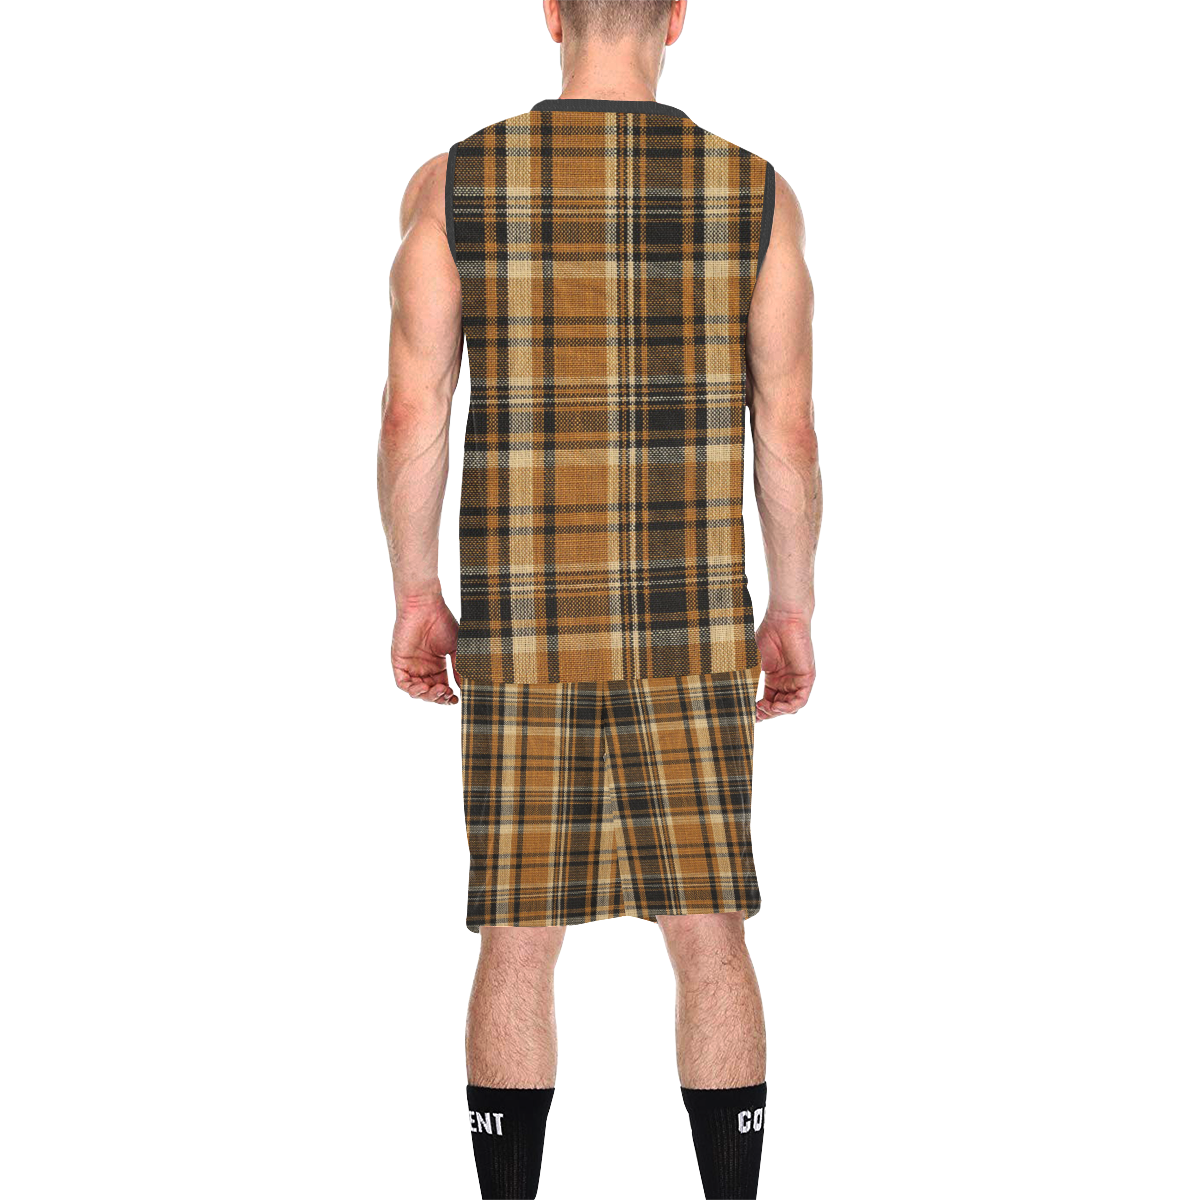 TARTAN DESIGN All Over Print Basketball Uniform